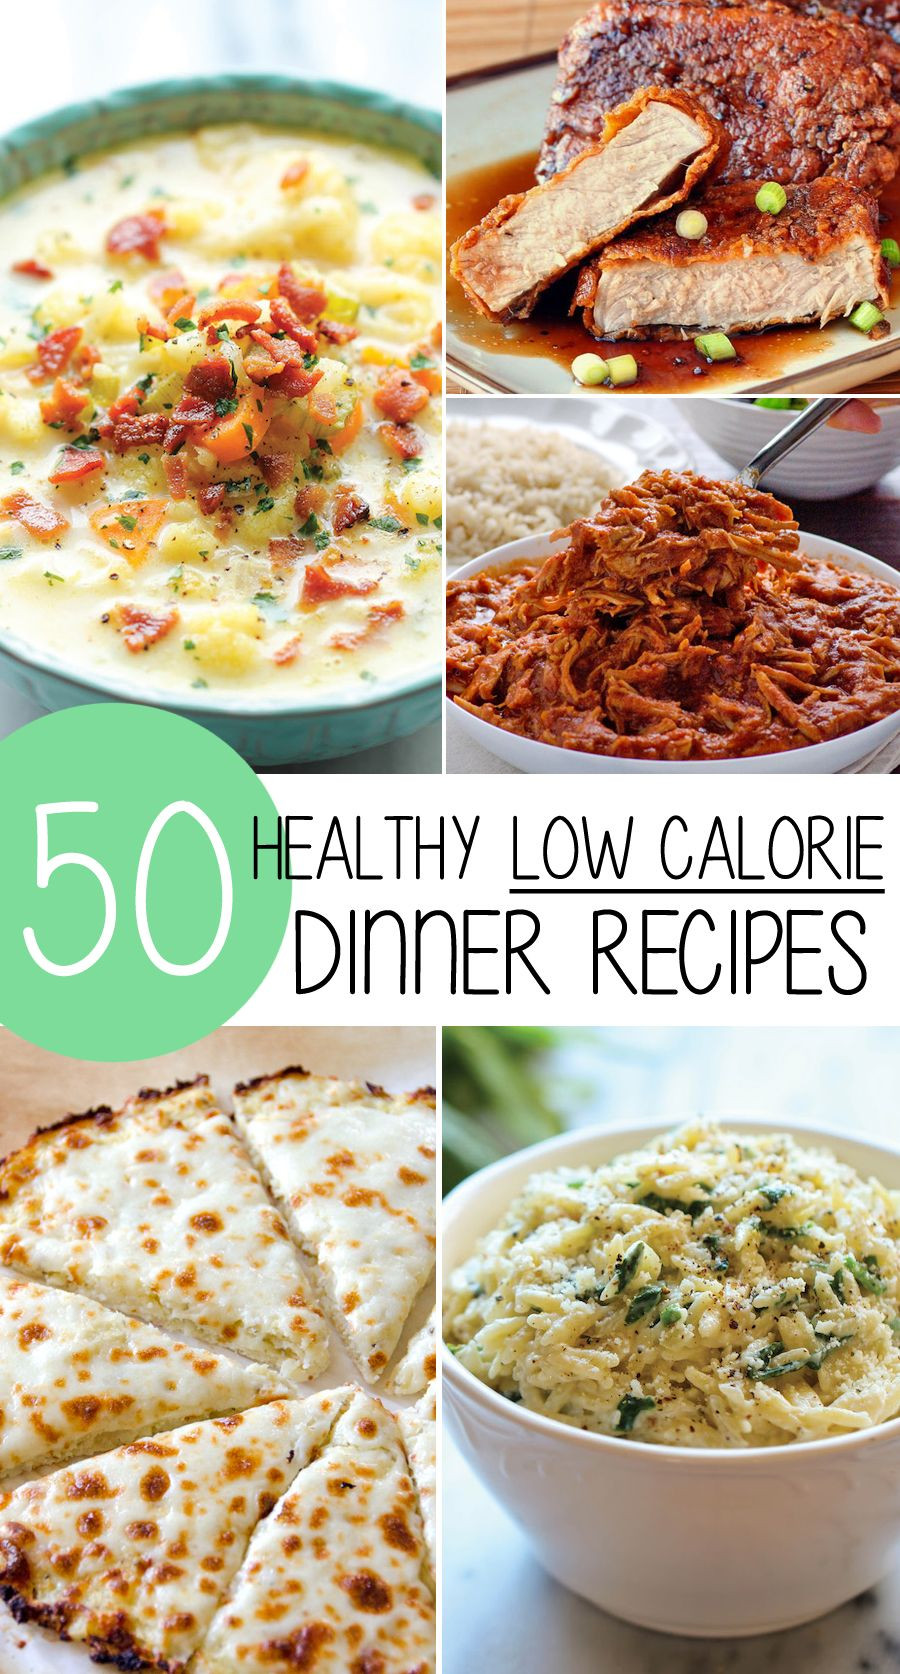 Low Calorie Dinners For Two  50 Healthy Low Calorie Weight Loss Dinner Recipes